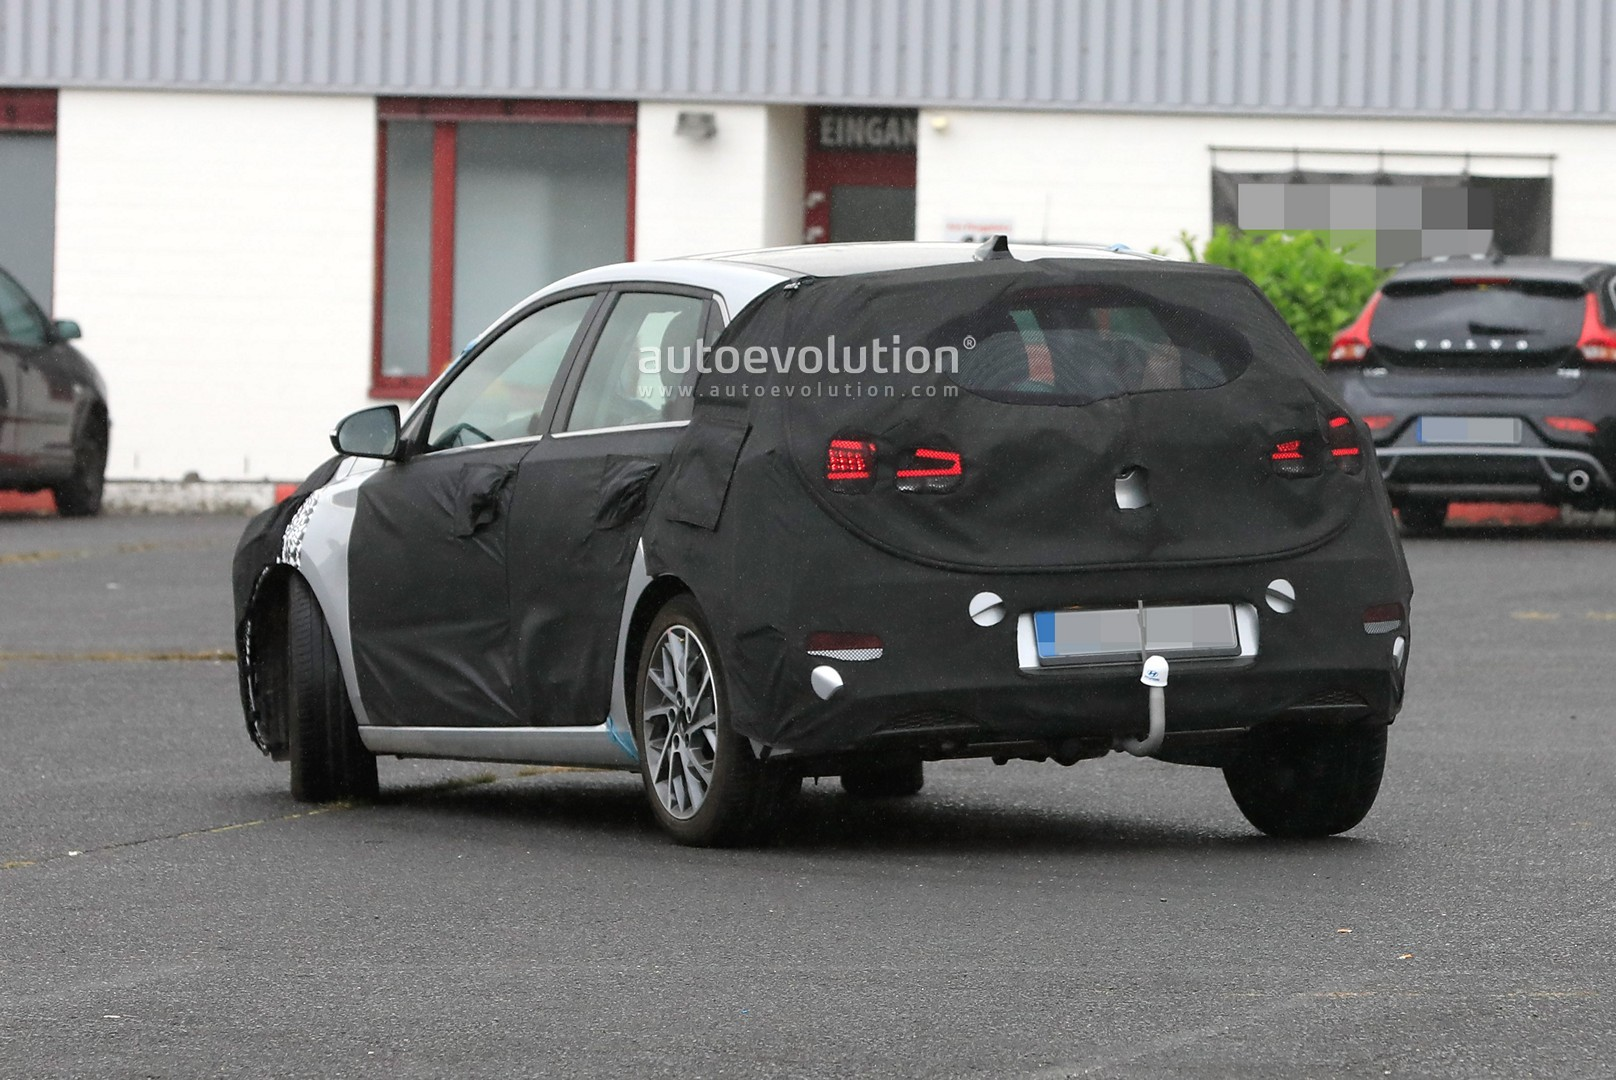 2021 Hyundai i30 Facelift Spied With Big Grille, Nexo-Like ...